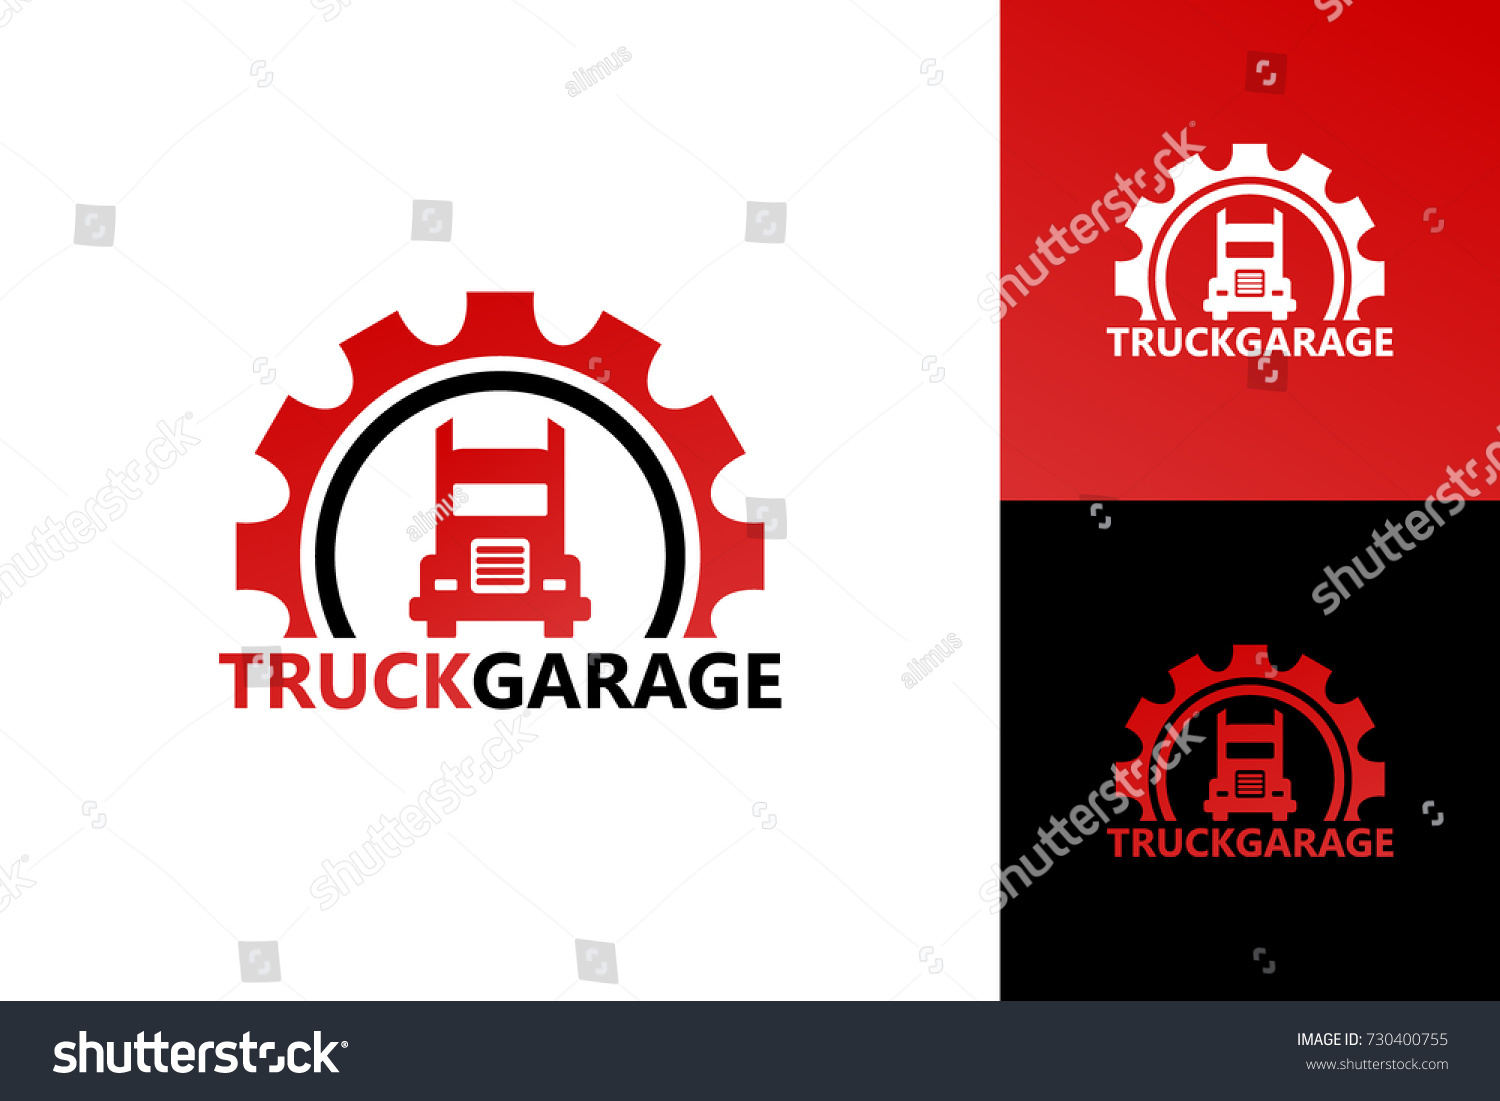 Garage Design Template Truck Garage Logo Template Design Stock Vector Royalty Free